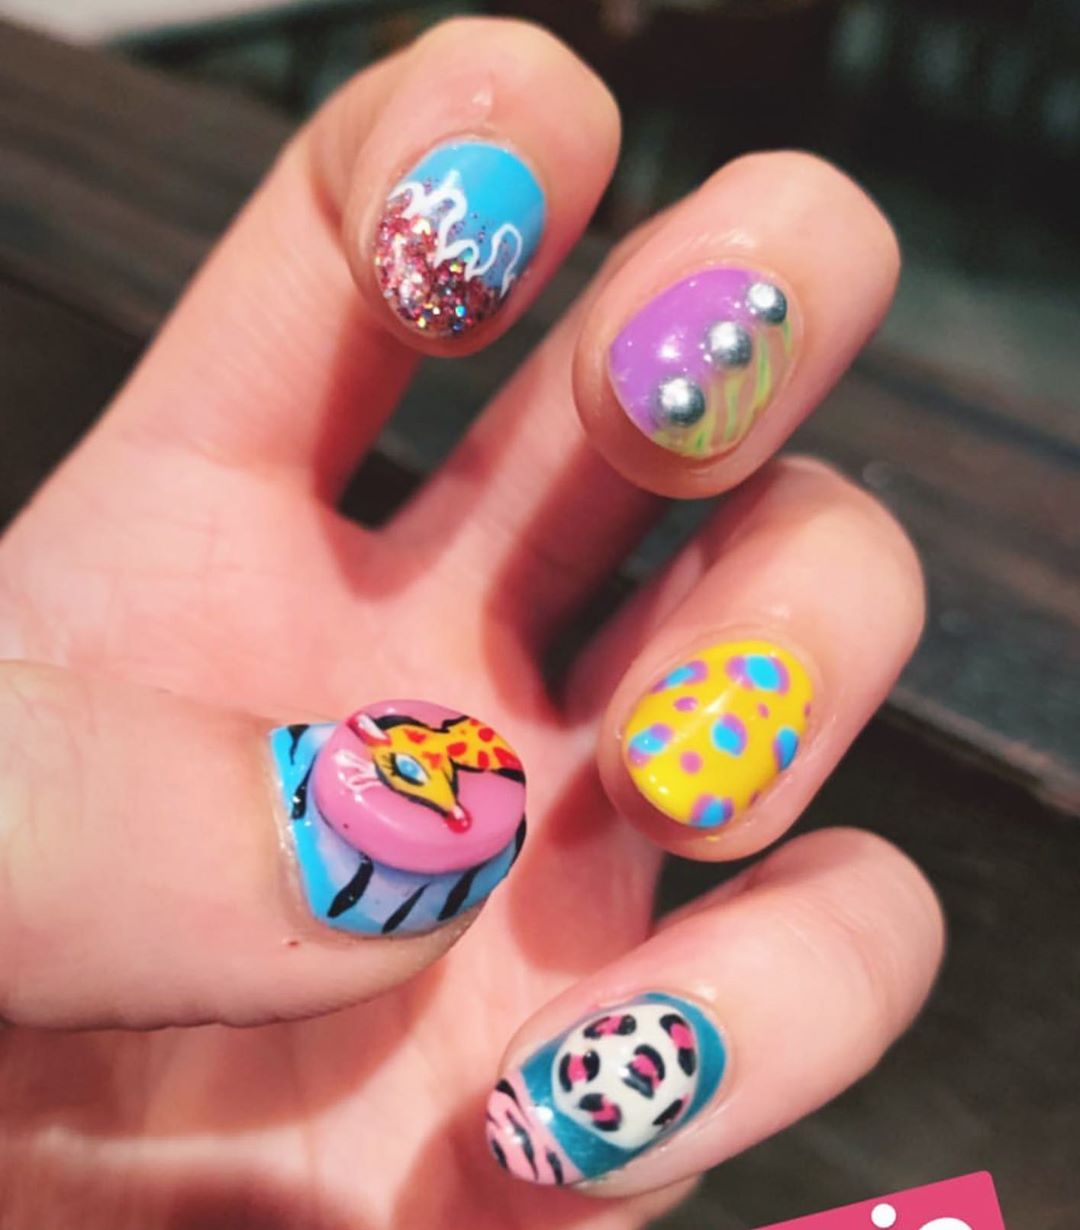 Jungle boogie from K. Kim ...Welcome All The Nail Art LoverReservations please call: 096-669-2996 or Line: benbenz.bbNailart  Manicure  Pedicure  Spa services glitternails